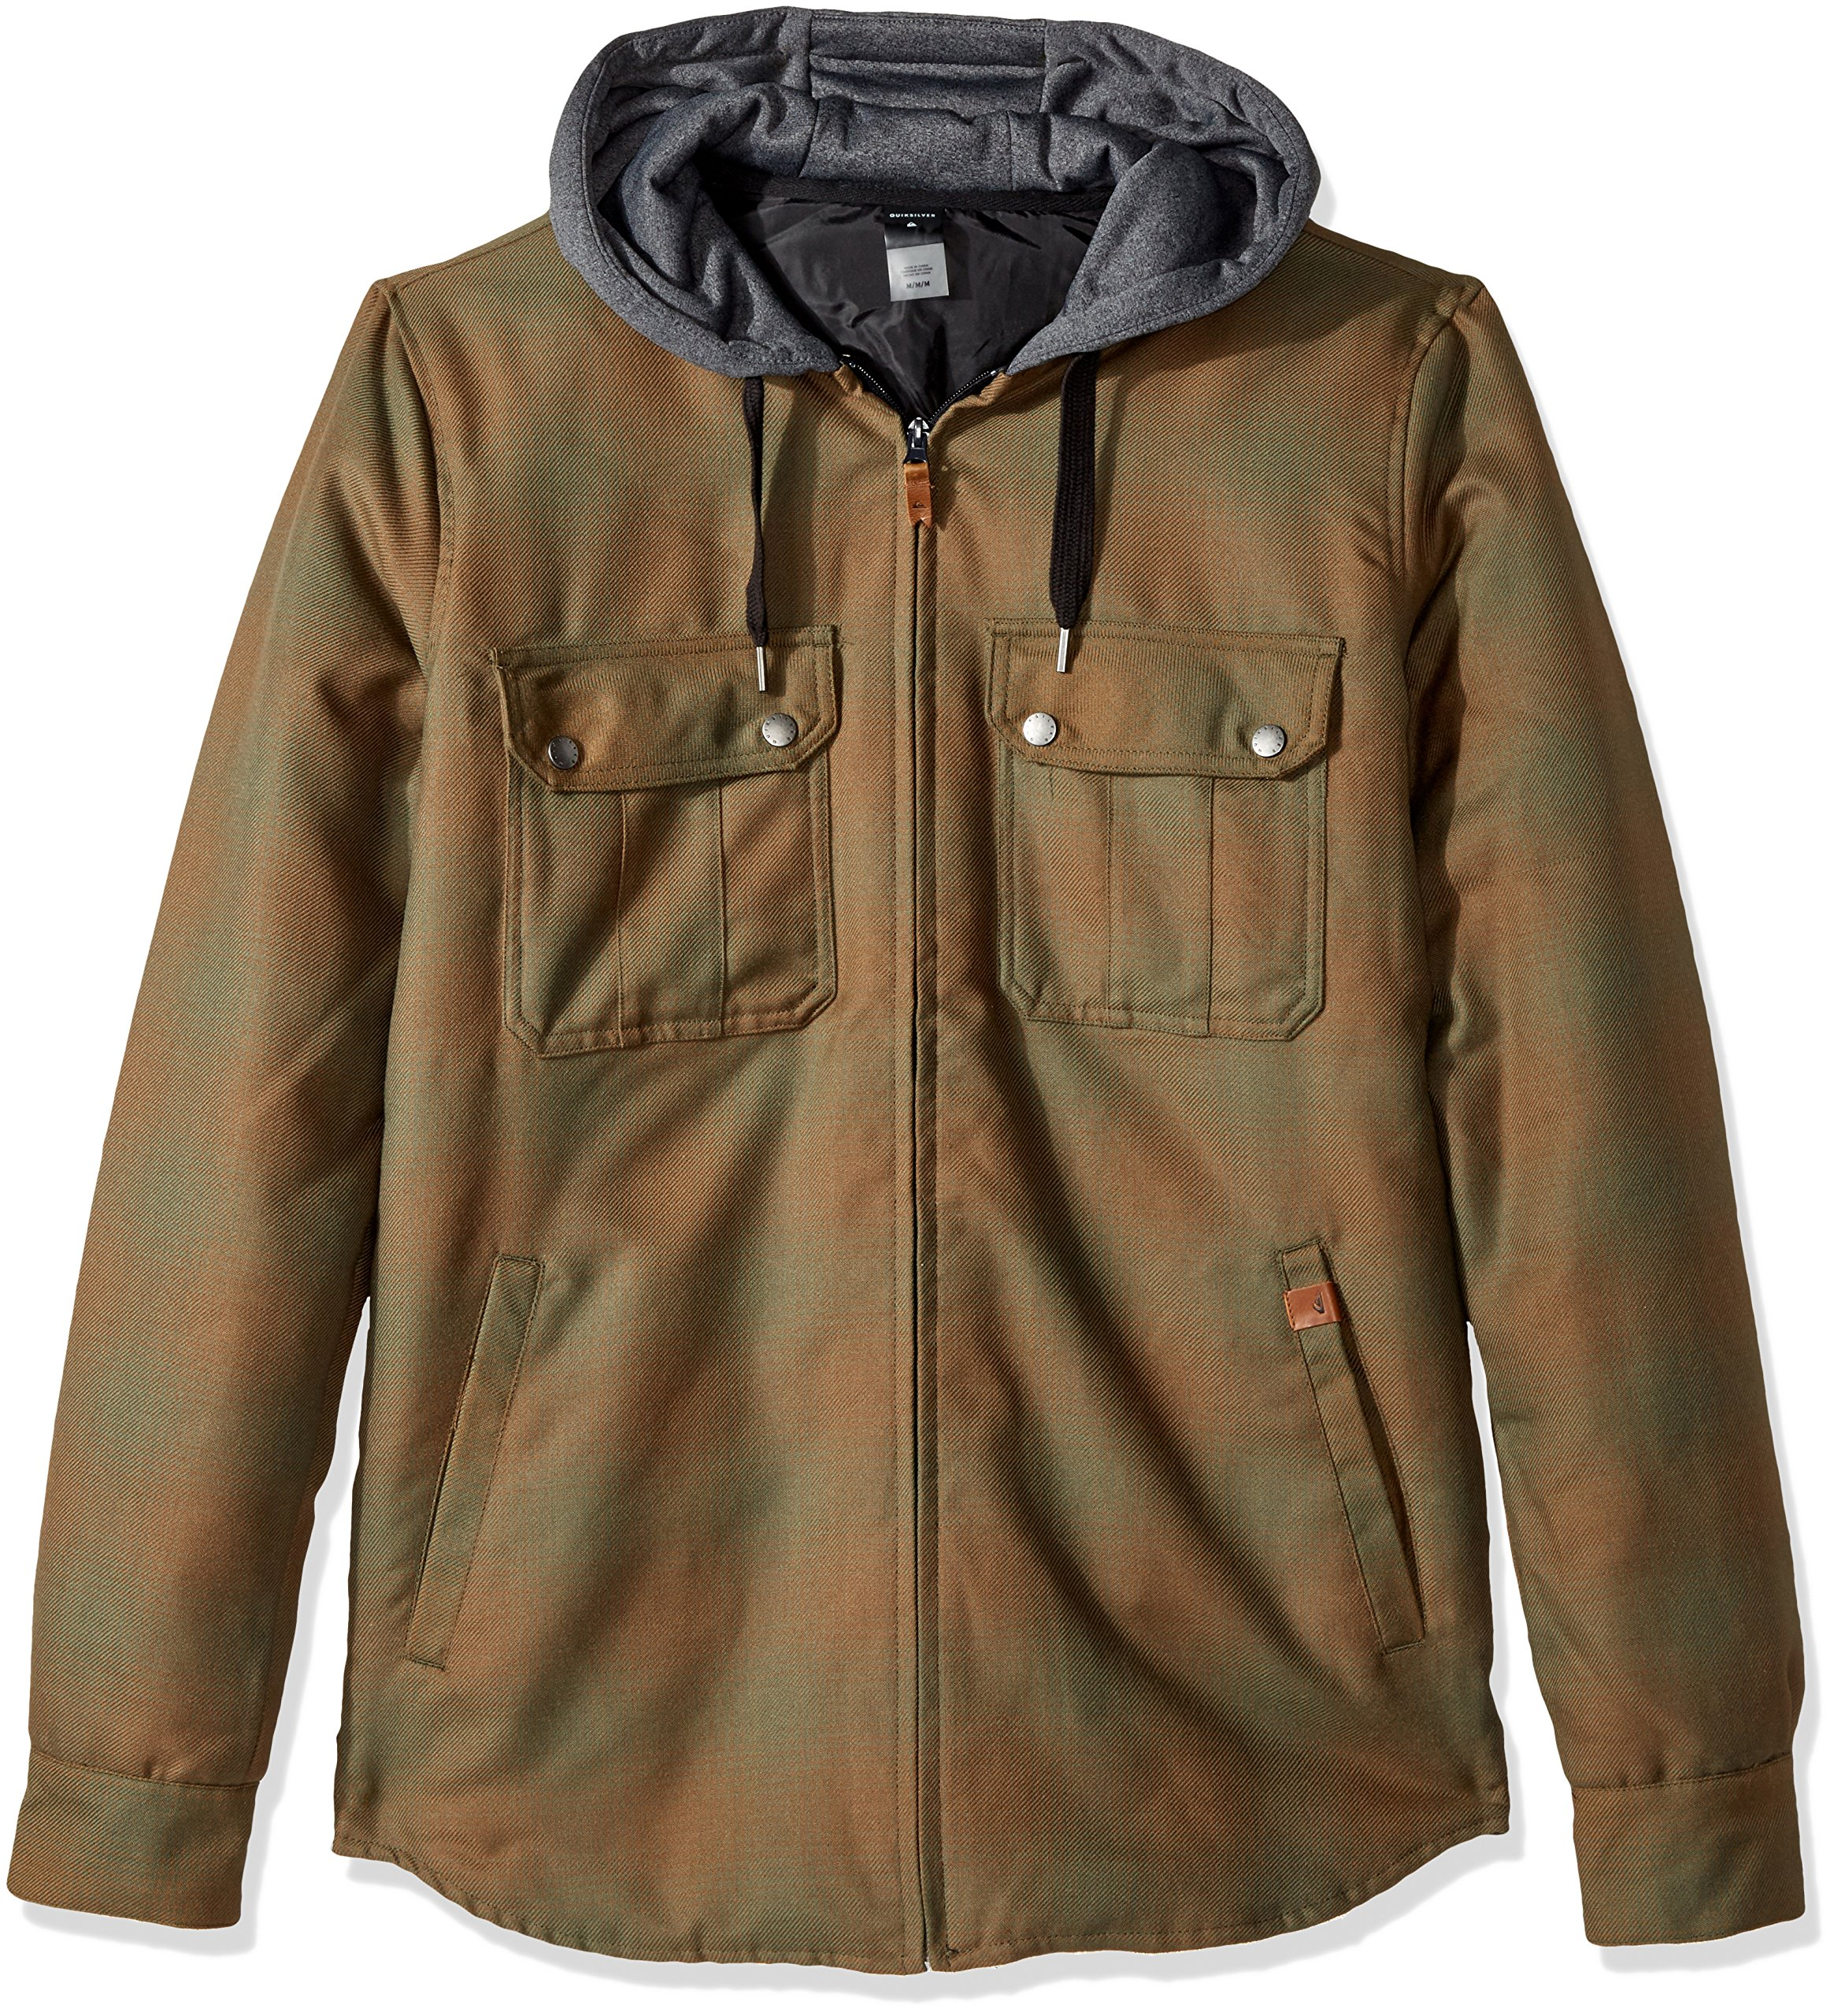 Quiksilver Men's Connector Riding Snowboard Ski Insulated Flannel Shirt, Cub, XXL by Quiksilver